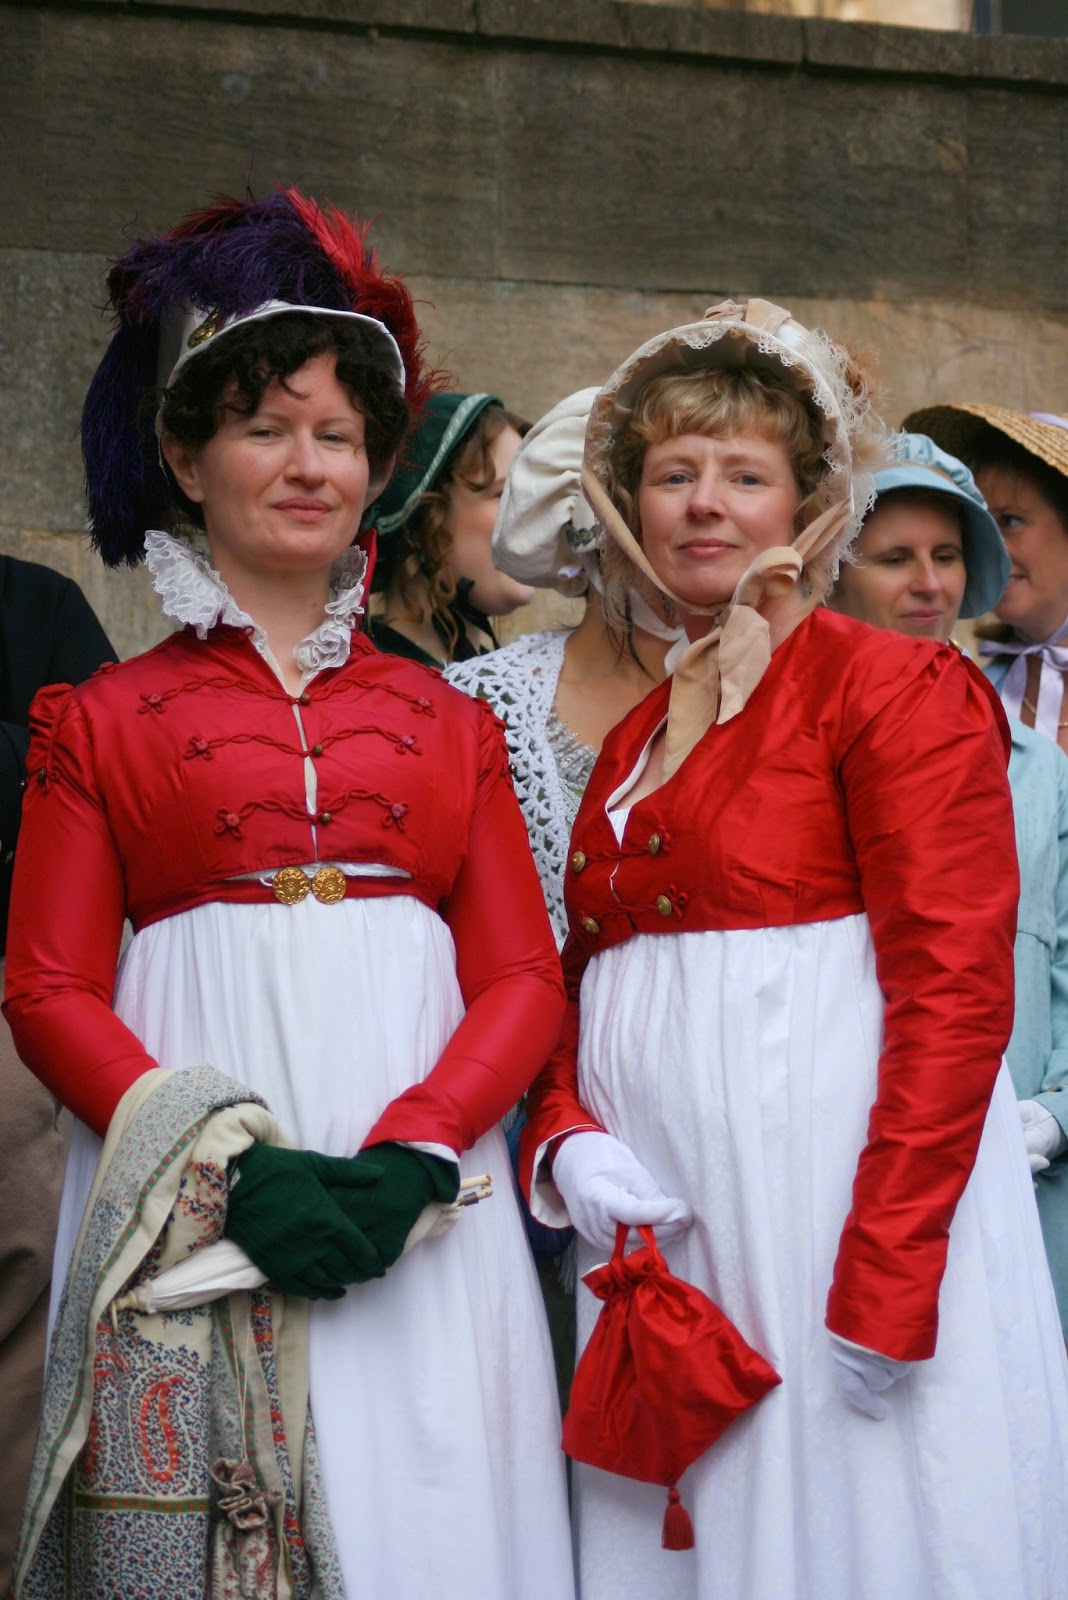 Natalie Garbett and Rachel Knowles  at the Jane Austen Grand  Regency Promenade in Bath